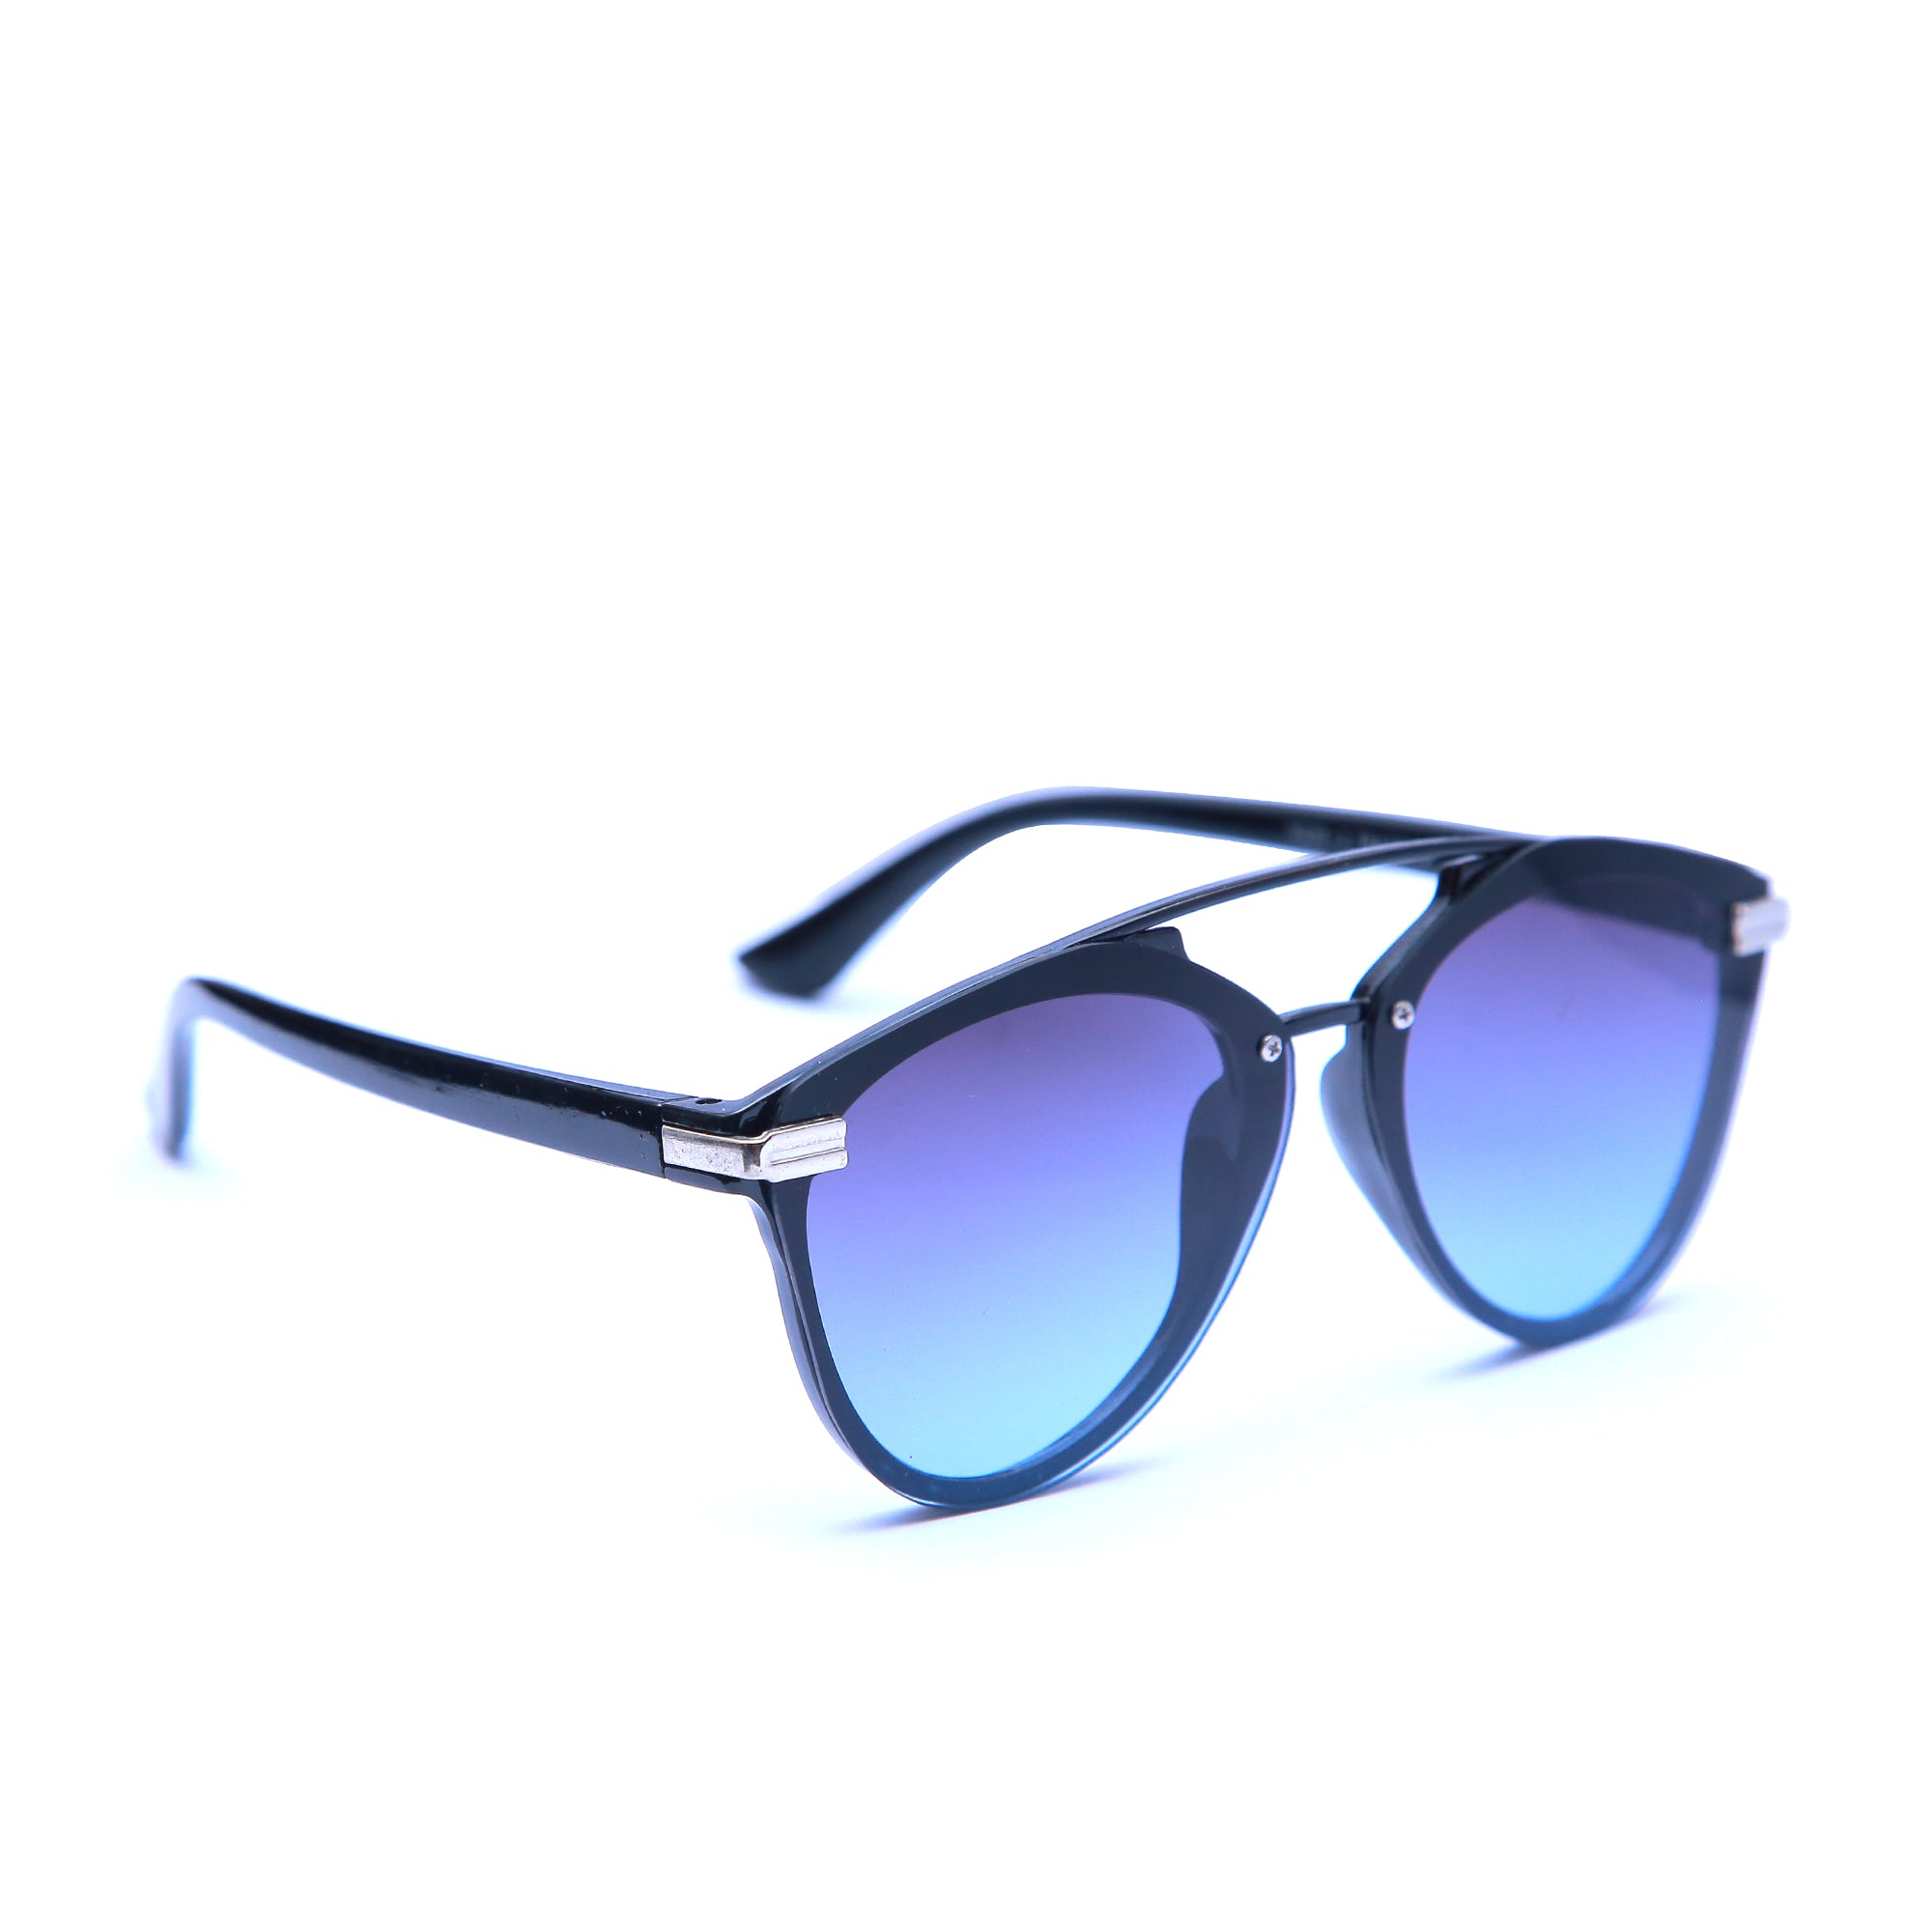 Sunglass - DS 06